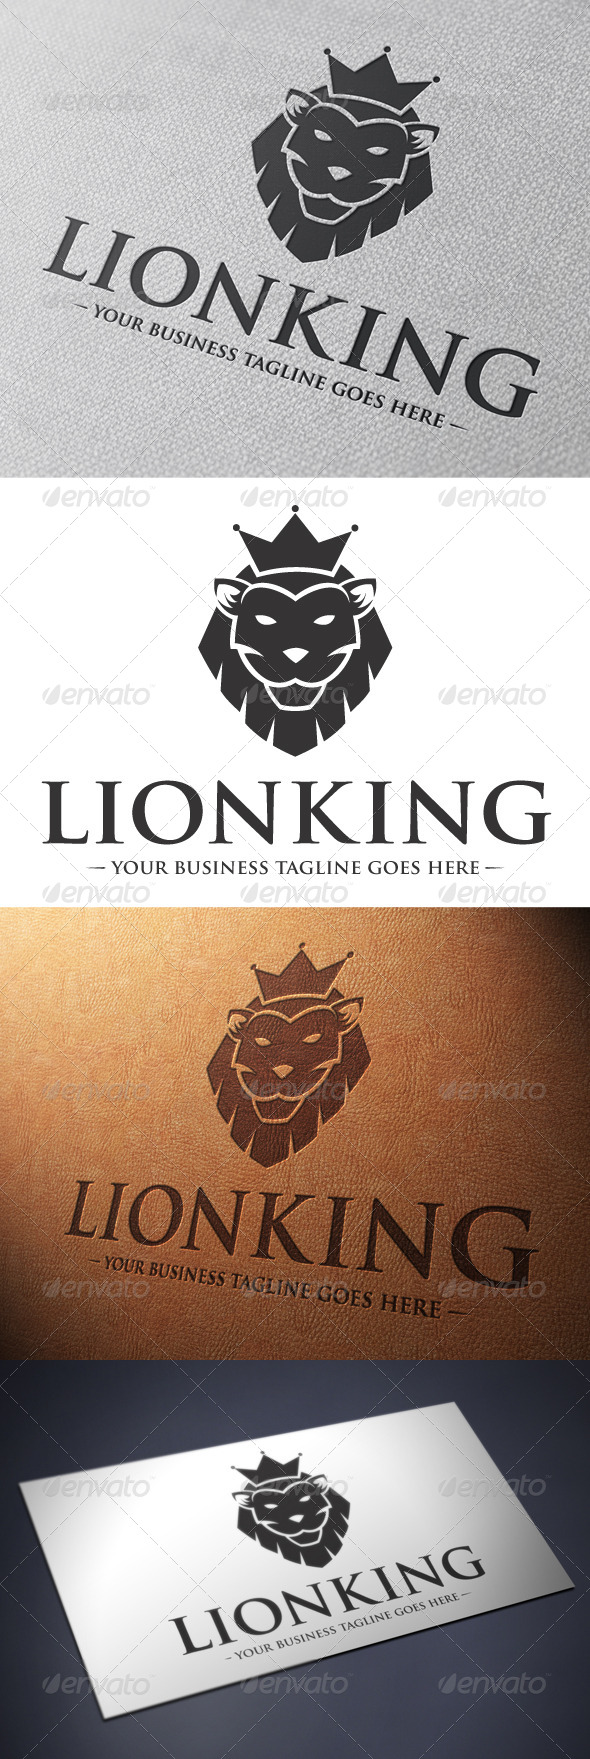 GraphicRiver Lion King Logo Template 4901315